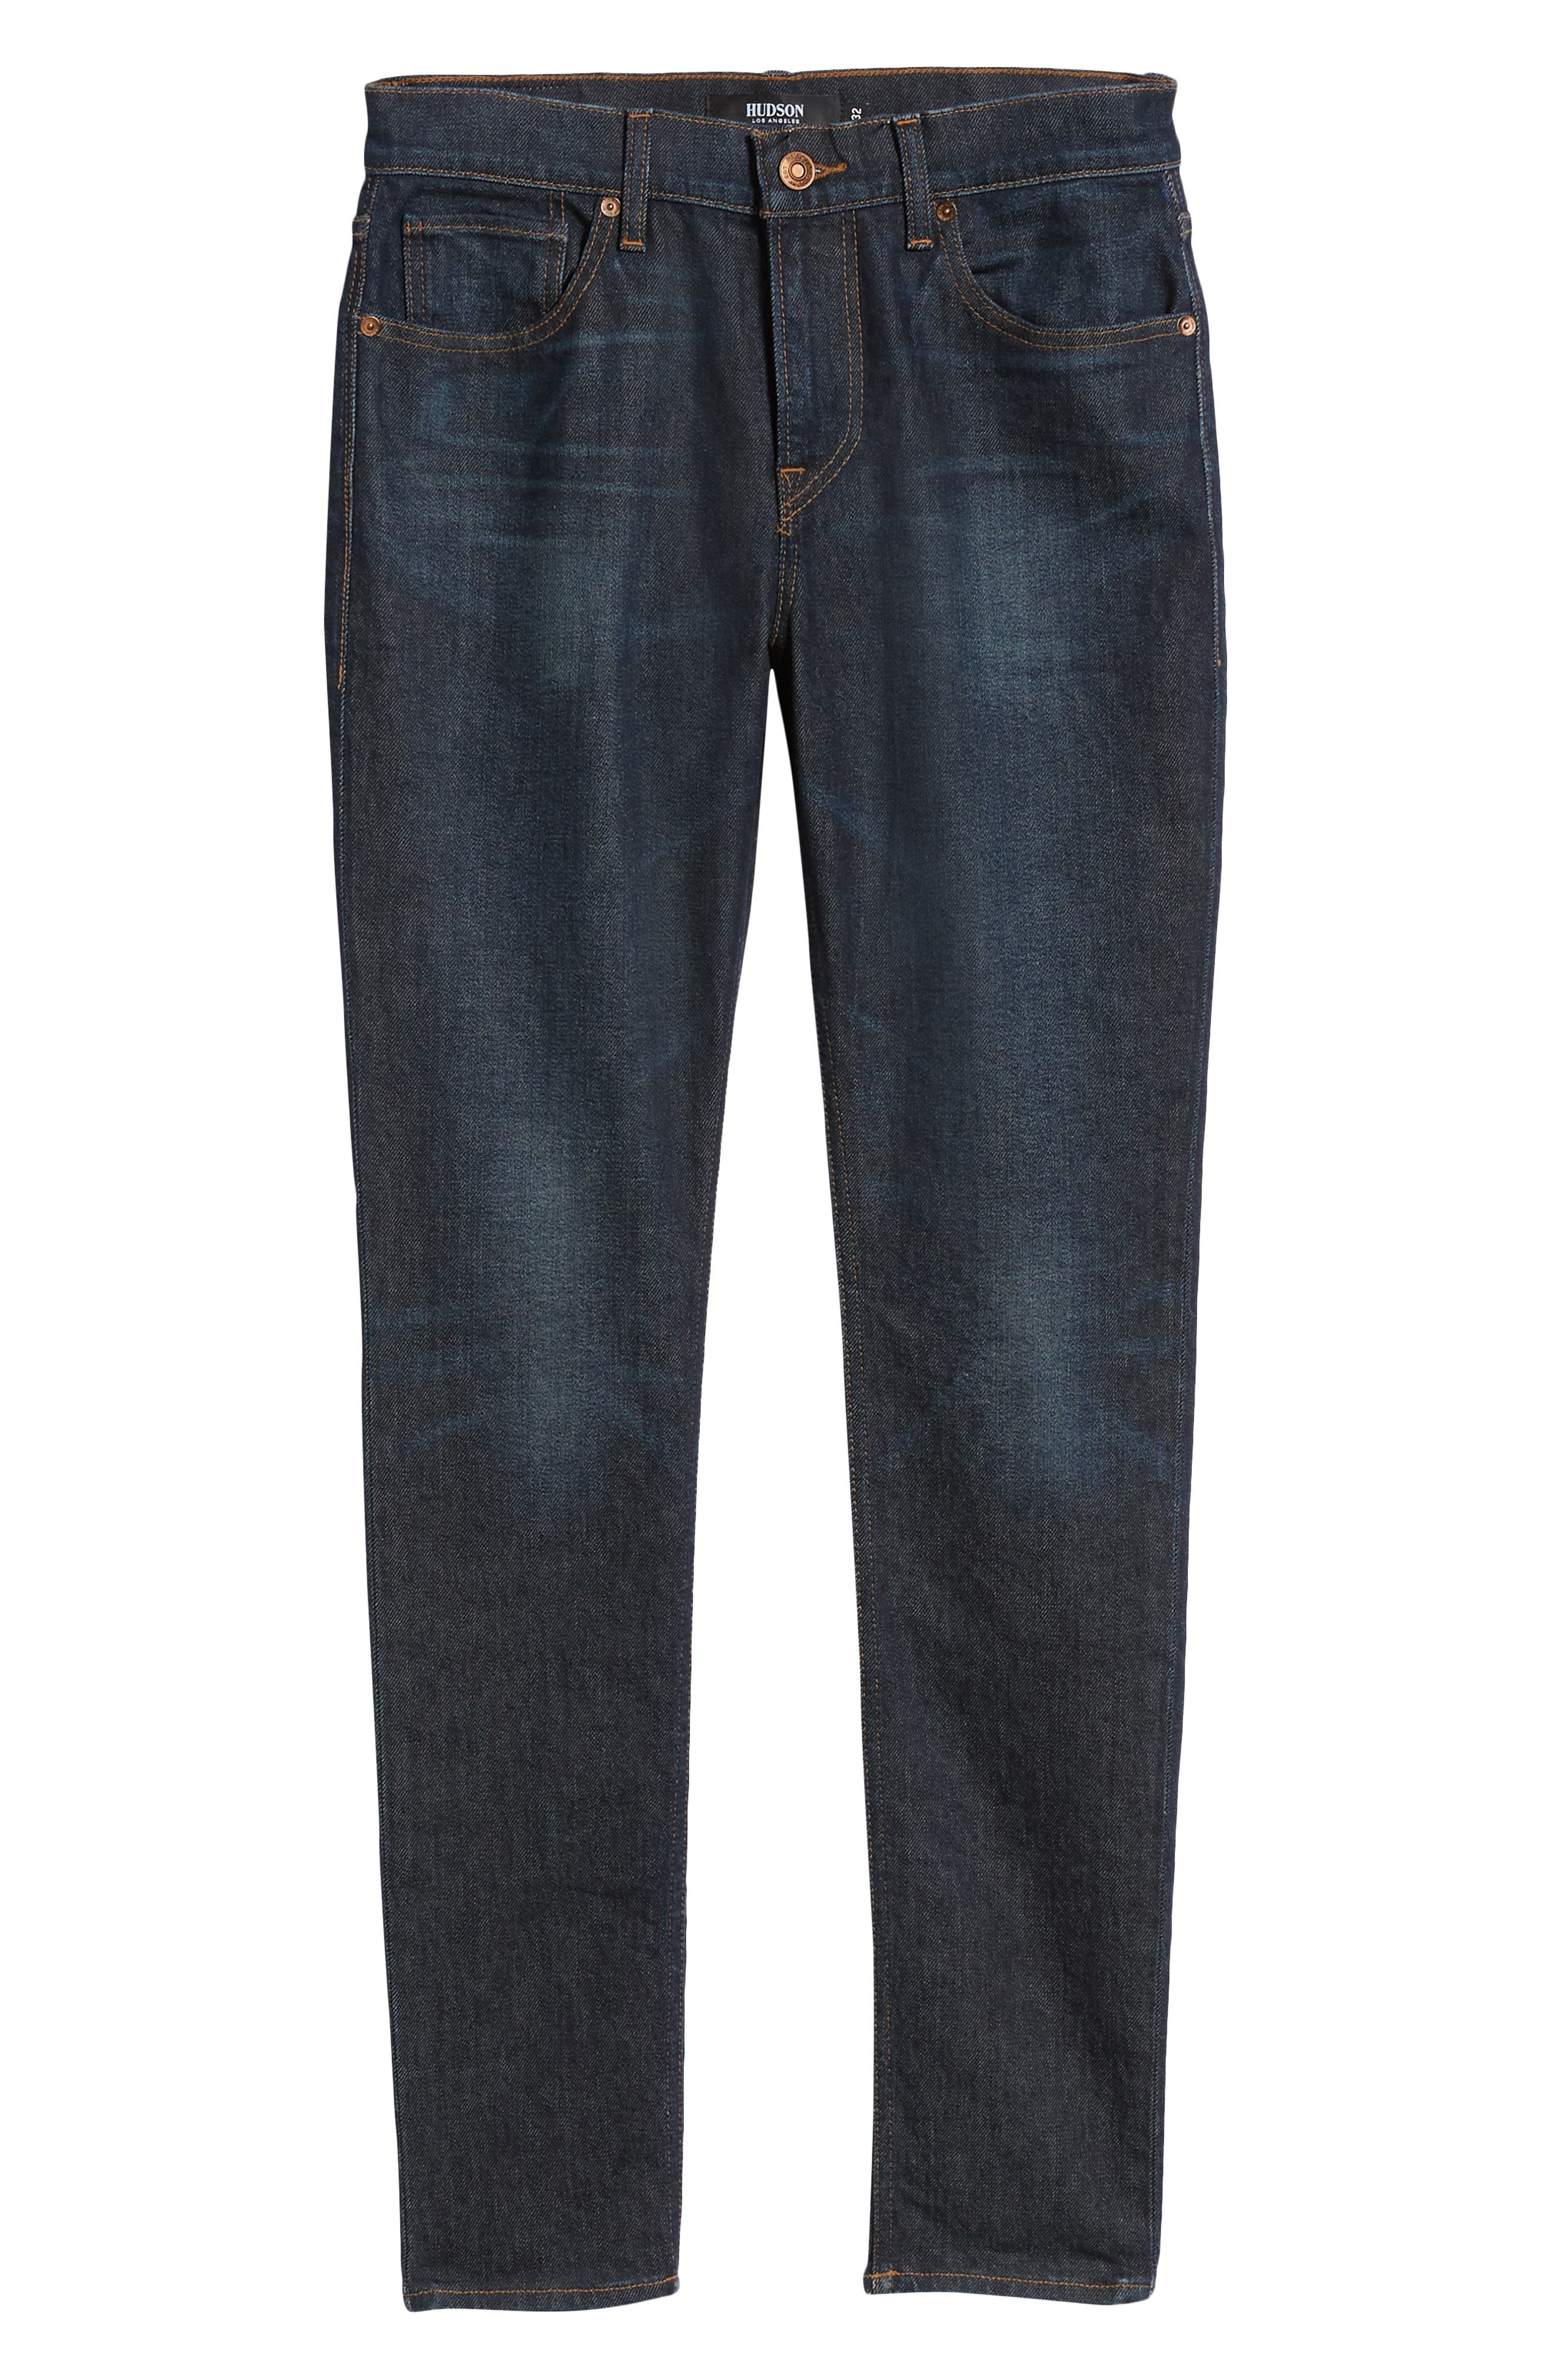 HUDSON JEANS, Axl Skinny Fit Jeans, Alternate thumbnail 6, color, VERKLER